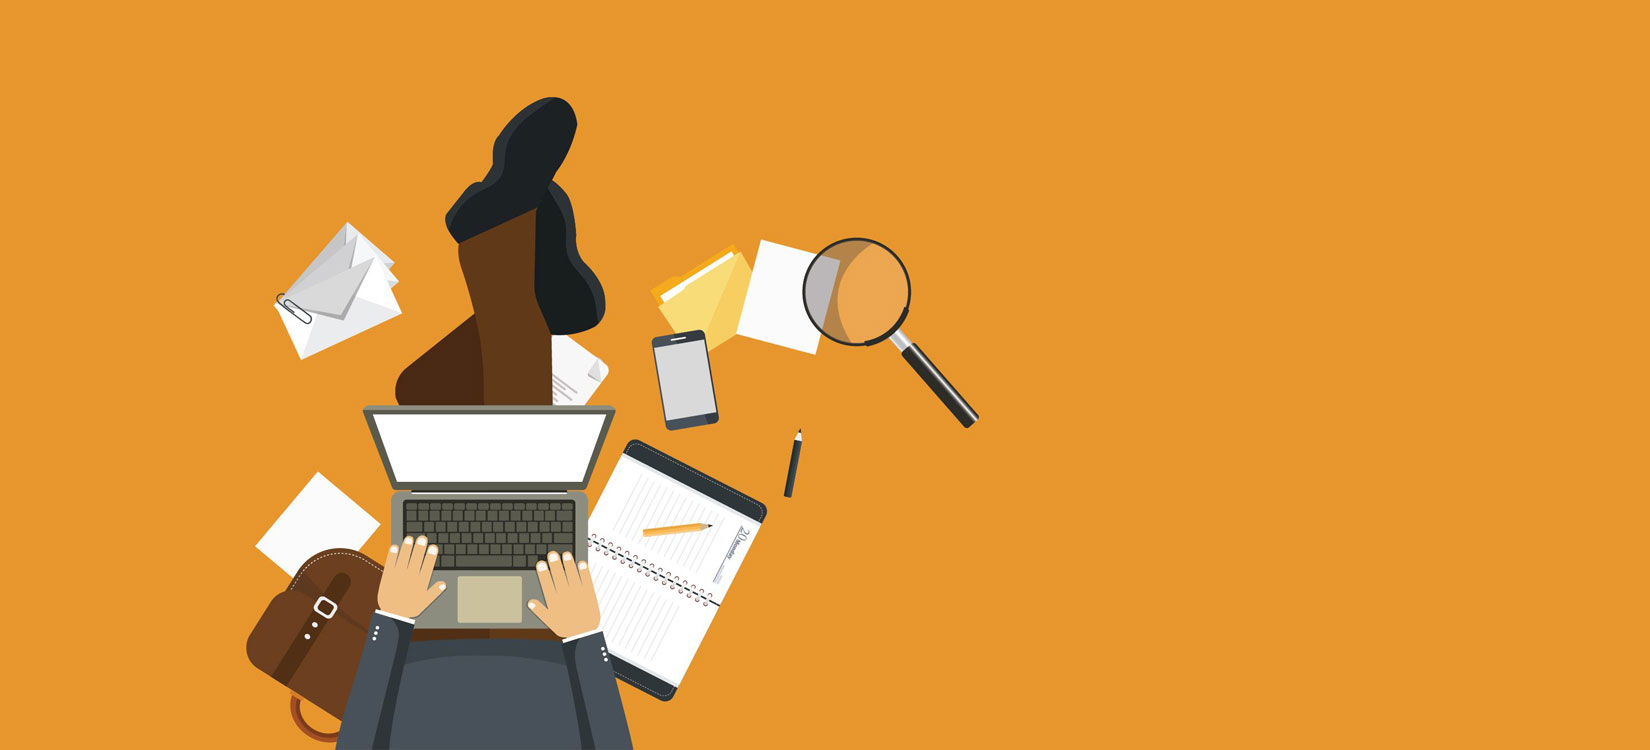 Finding the Right Digital Marketing Agency to Work With